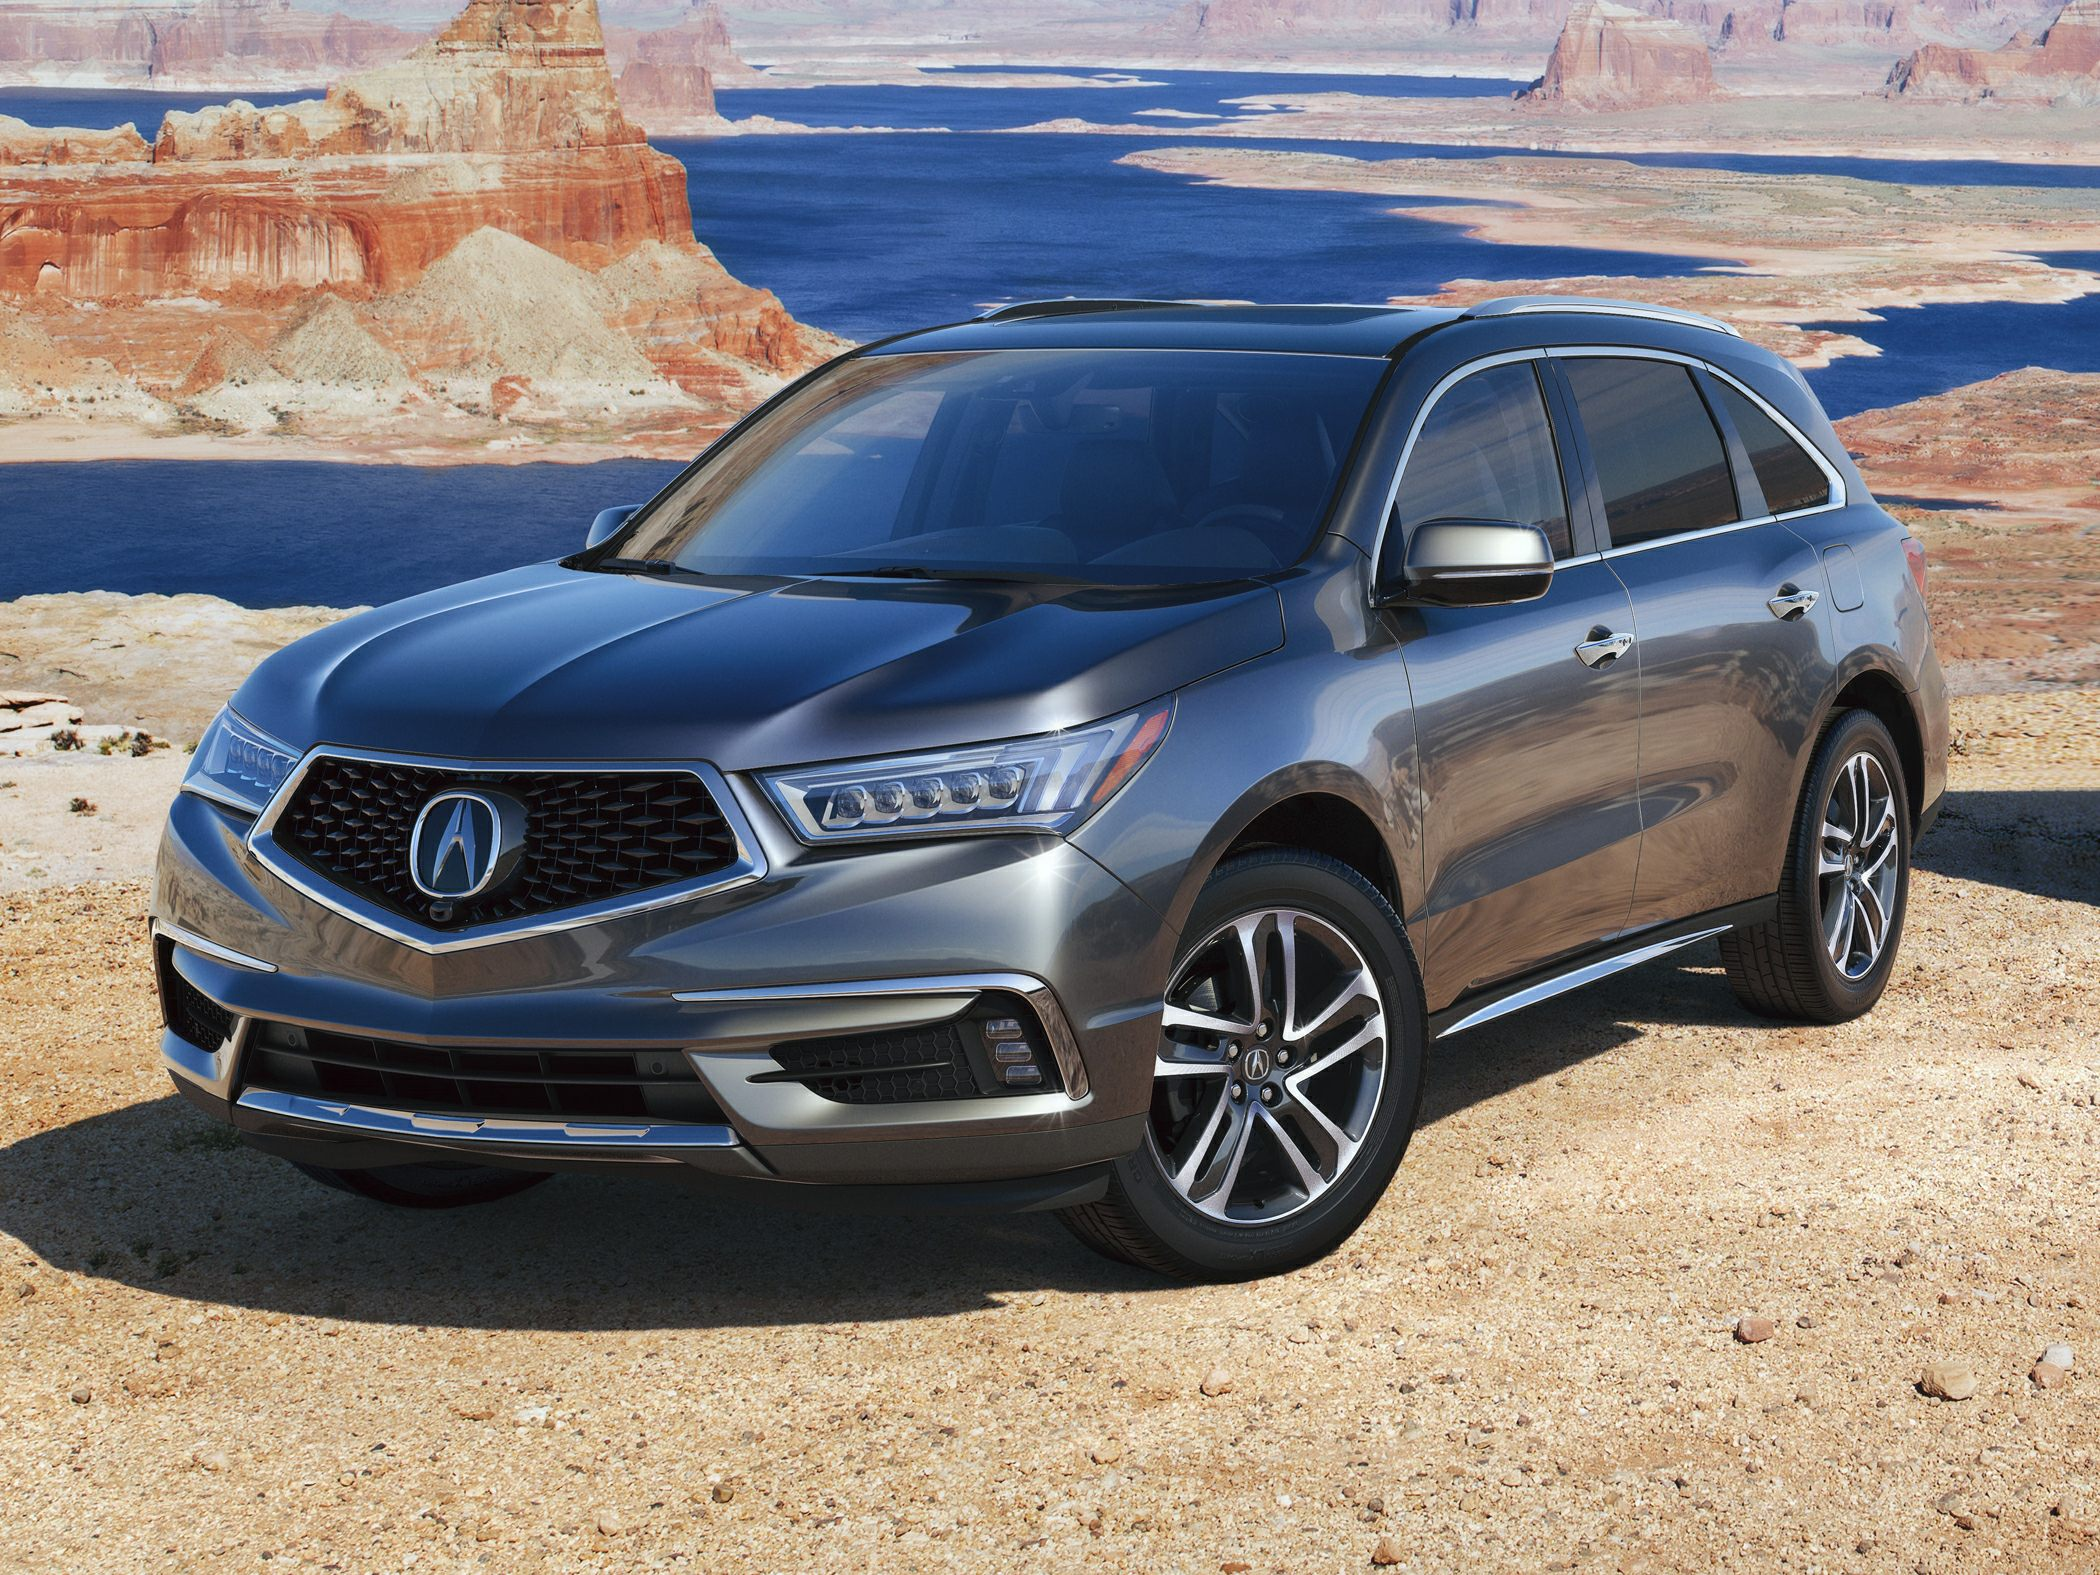 Acura MDX For Sale In Toronto Acura Downtown - Www acura mdx 2018